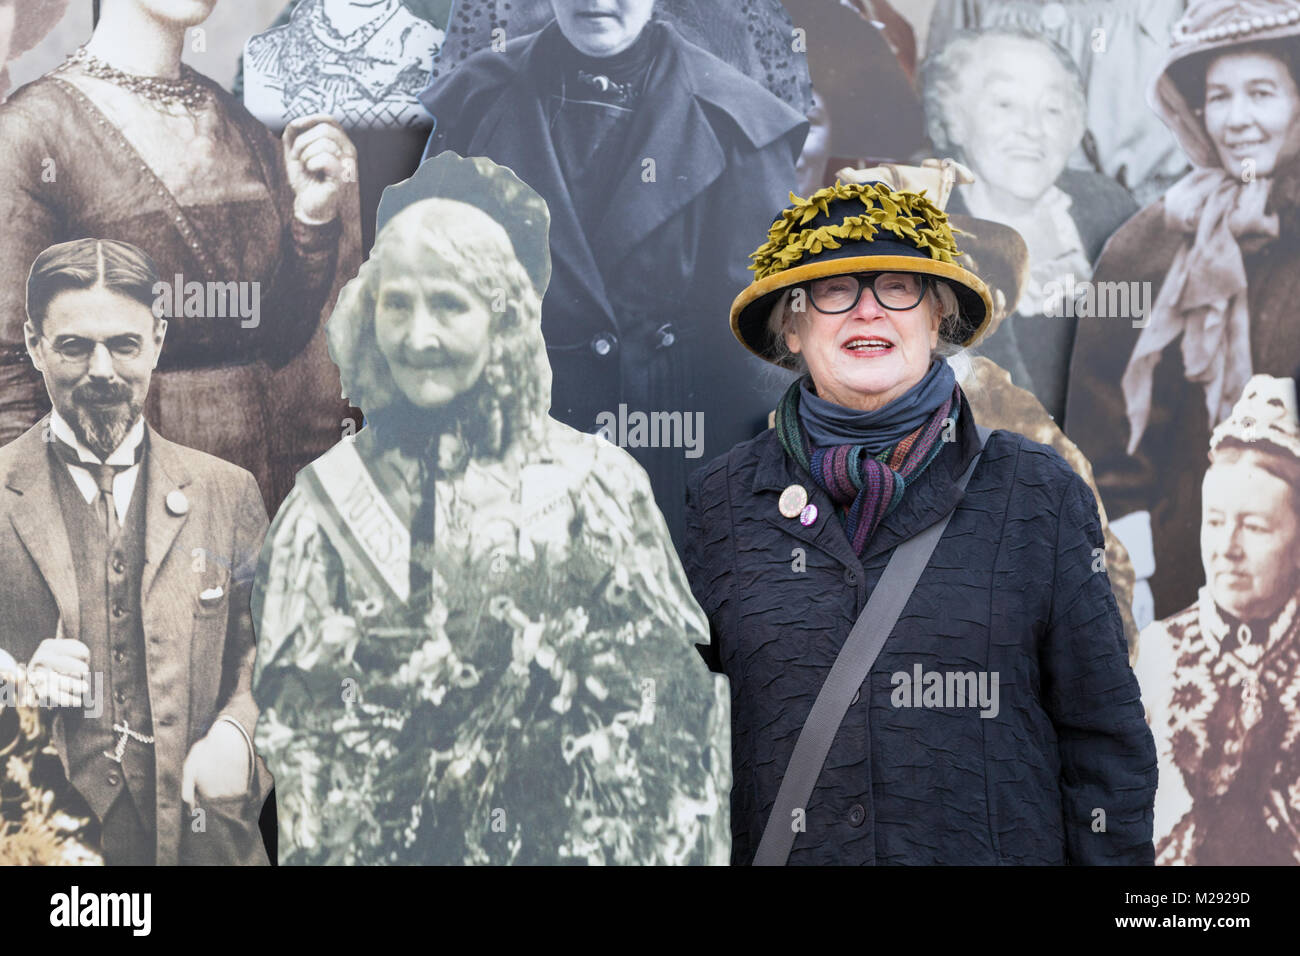 Trafalgar Square, London, 6th Feb 2018. A woman in a Suffragette's hat has travelled all the way from New Zealand - Stock Image